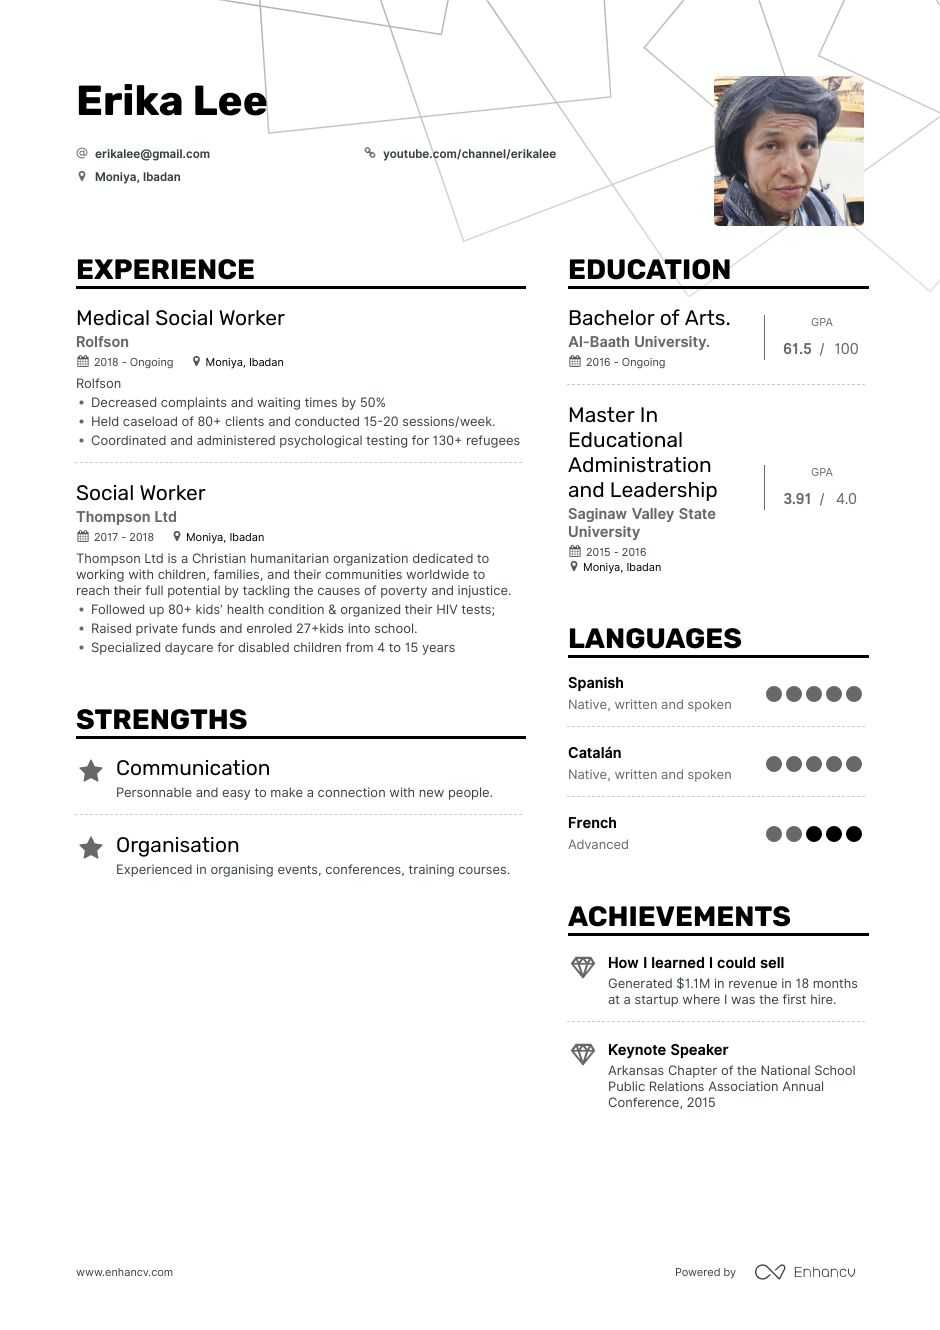 social worker resume example for enhancv work examples best weight paper bachelor student Resume Social Work Resume Examples 2020